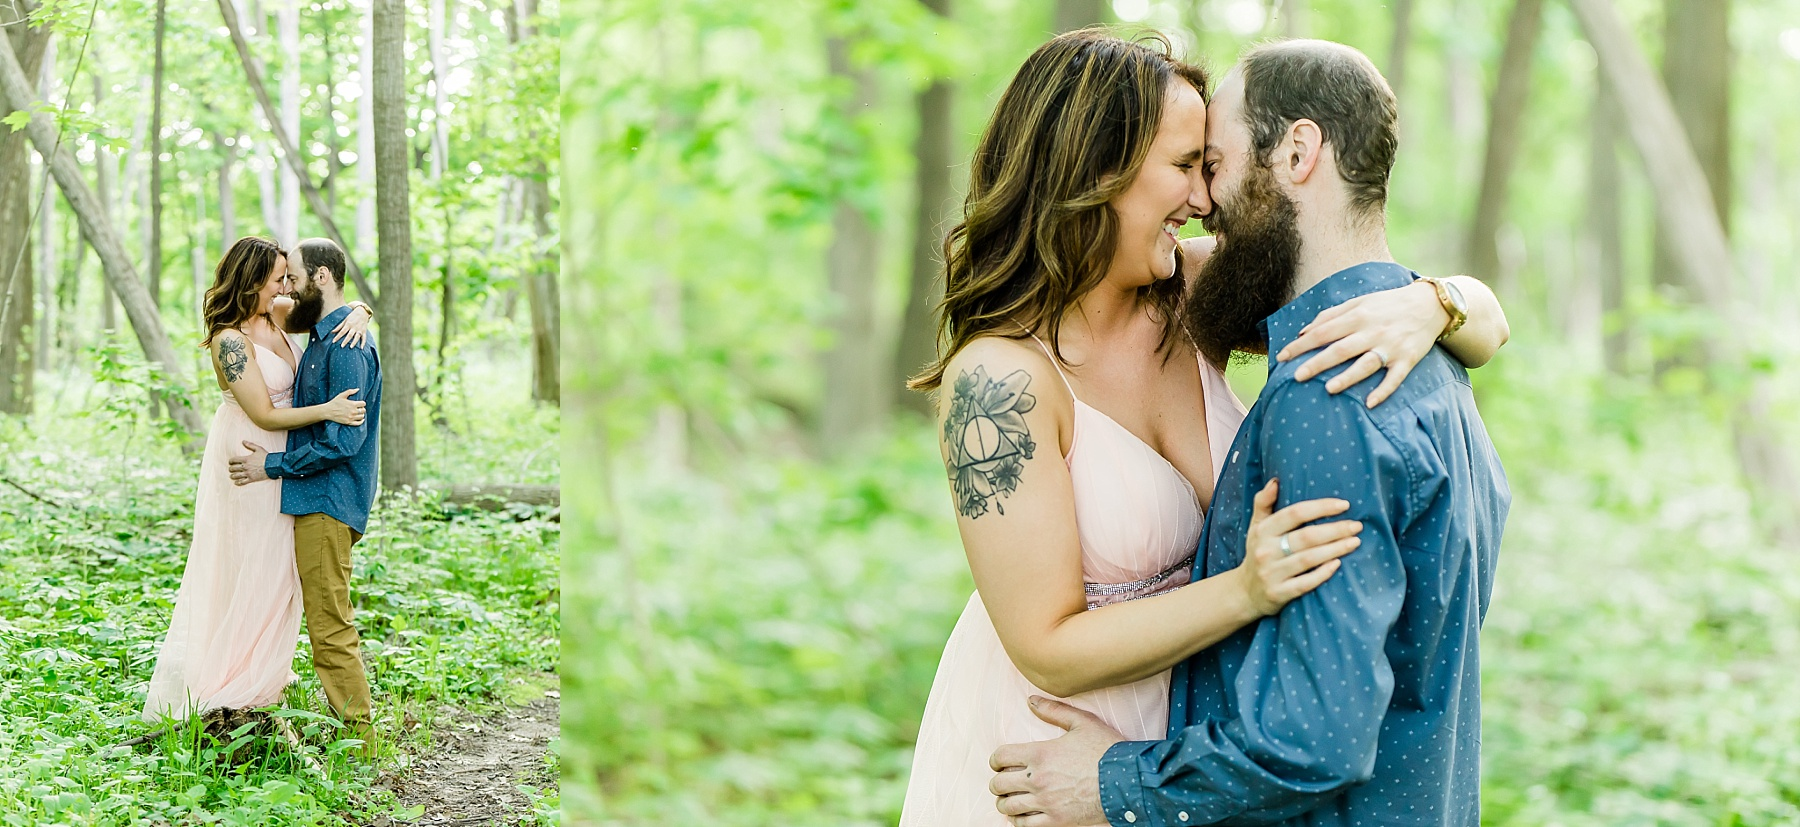 monticello indiana wedding engagement photography simple adventure weird_0020.jpg